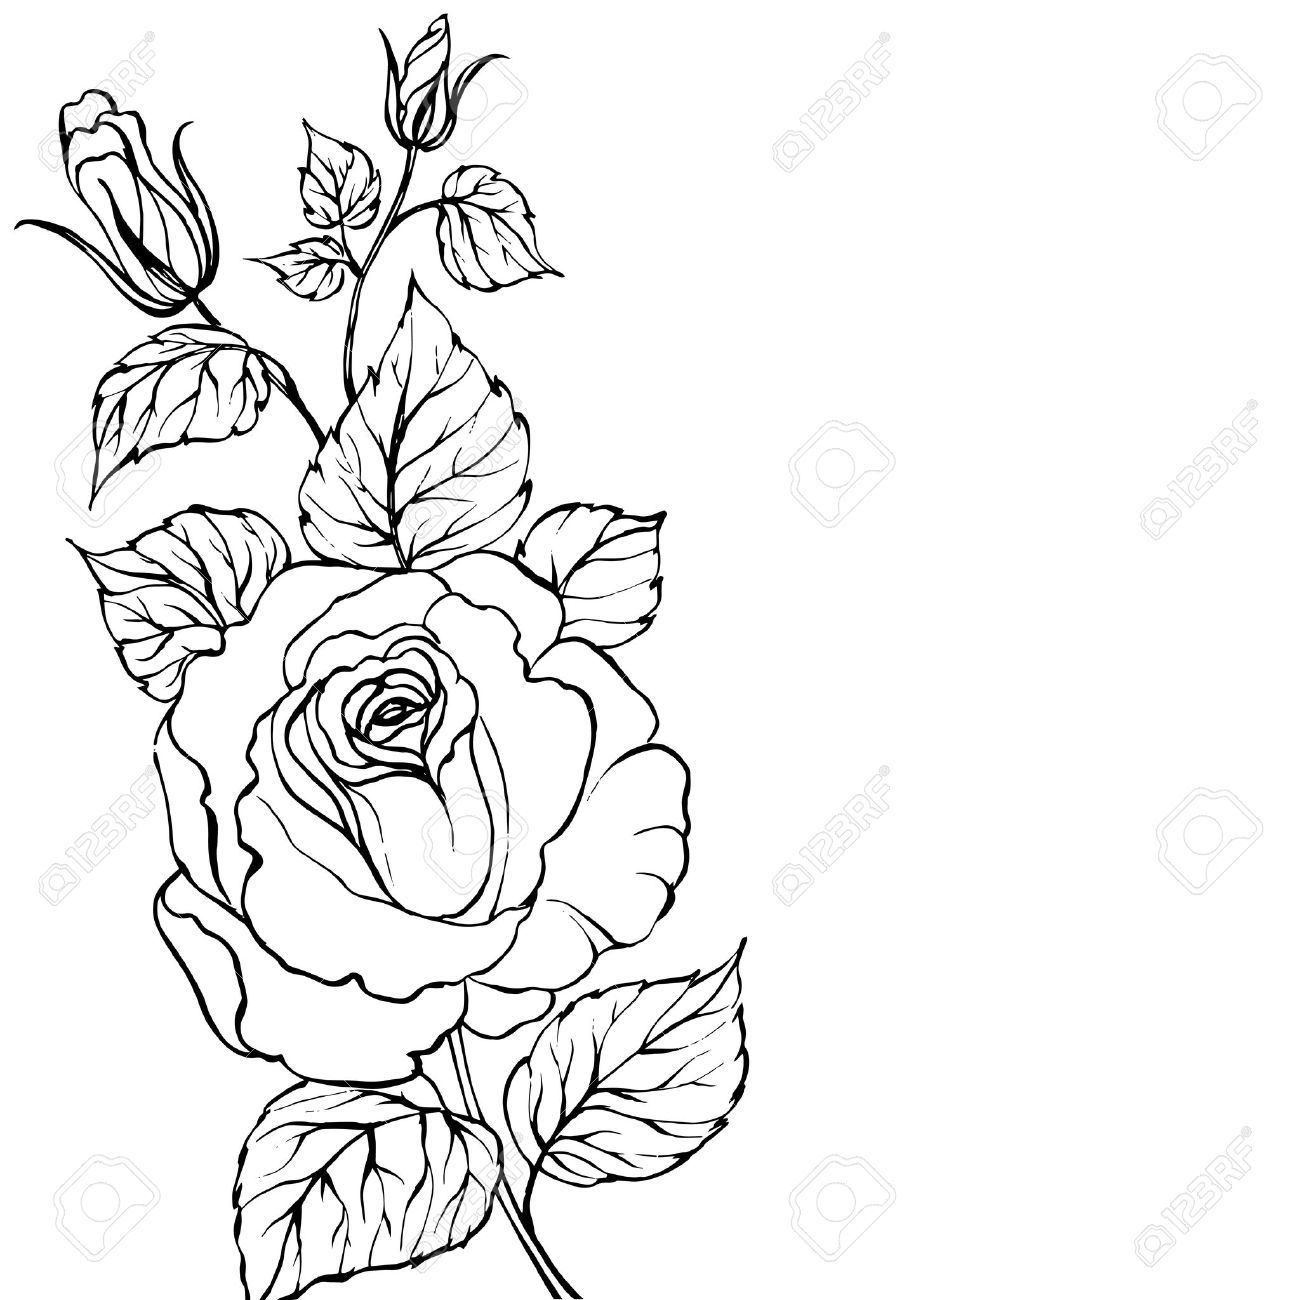 Traditional Flower Line Drawing : Rose tattoos outline google search tattoo pinterest